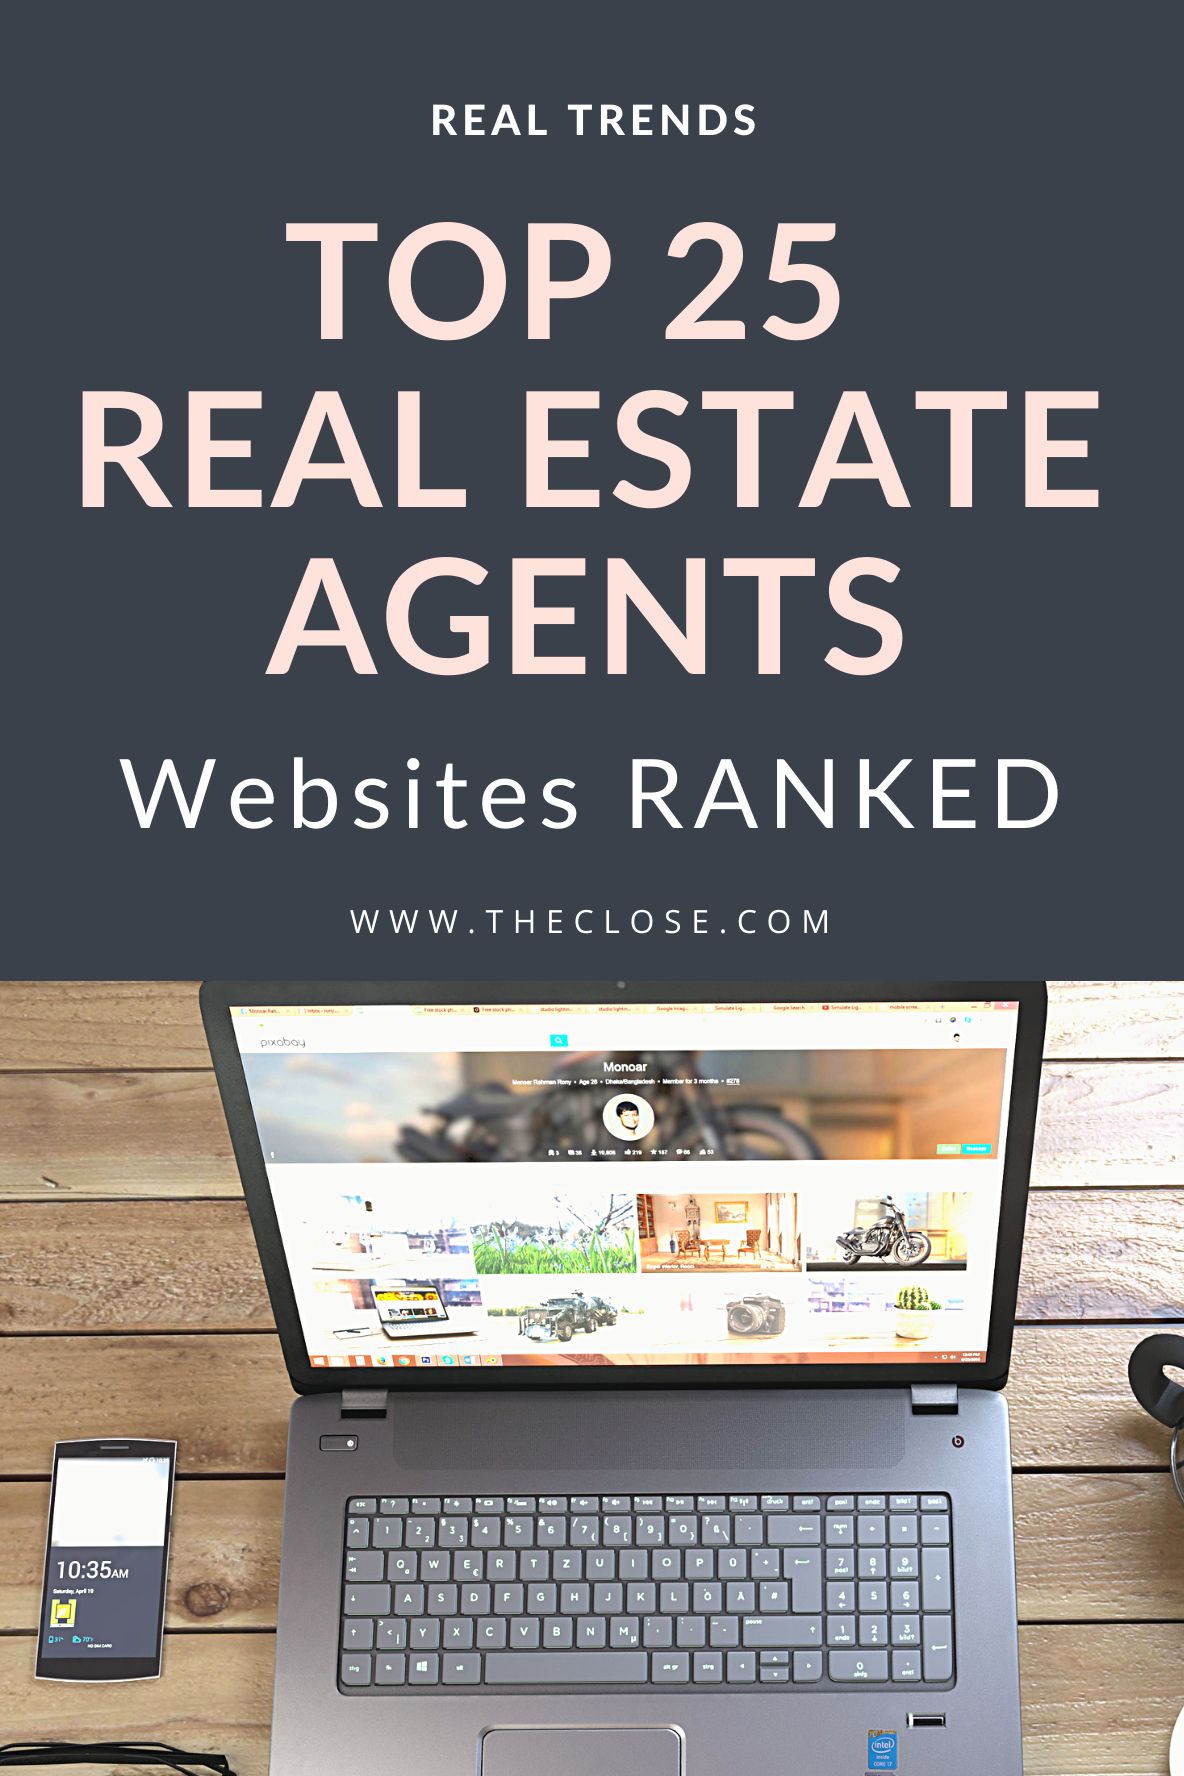 Real Trends Top 25 Real Estate Agents Websites Ranked The Close Real Estate Agent Website Real Estate Agent Website Design Real Estate Website Design